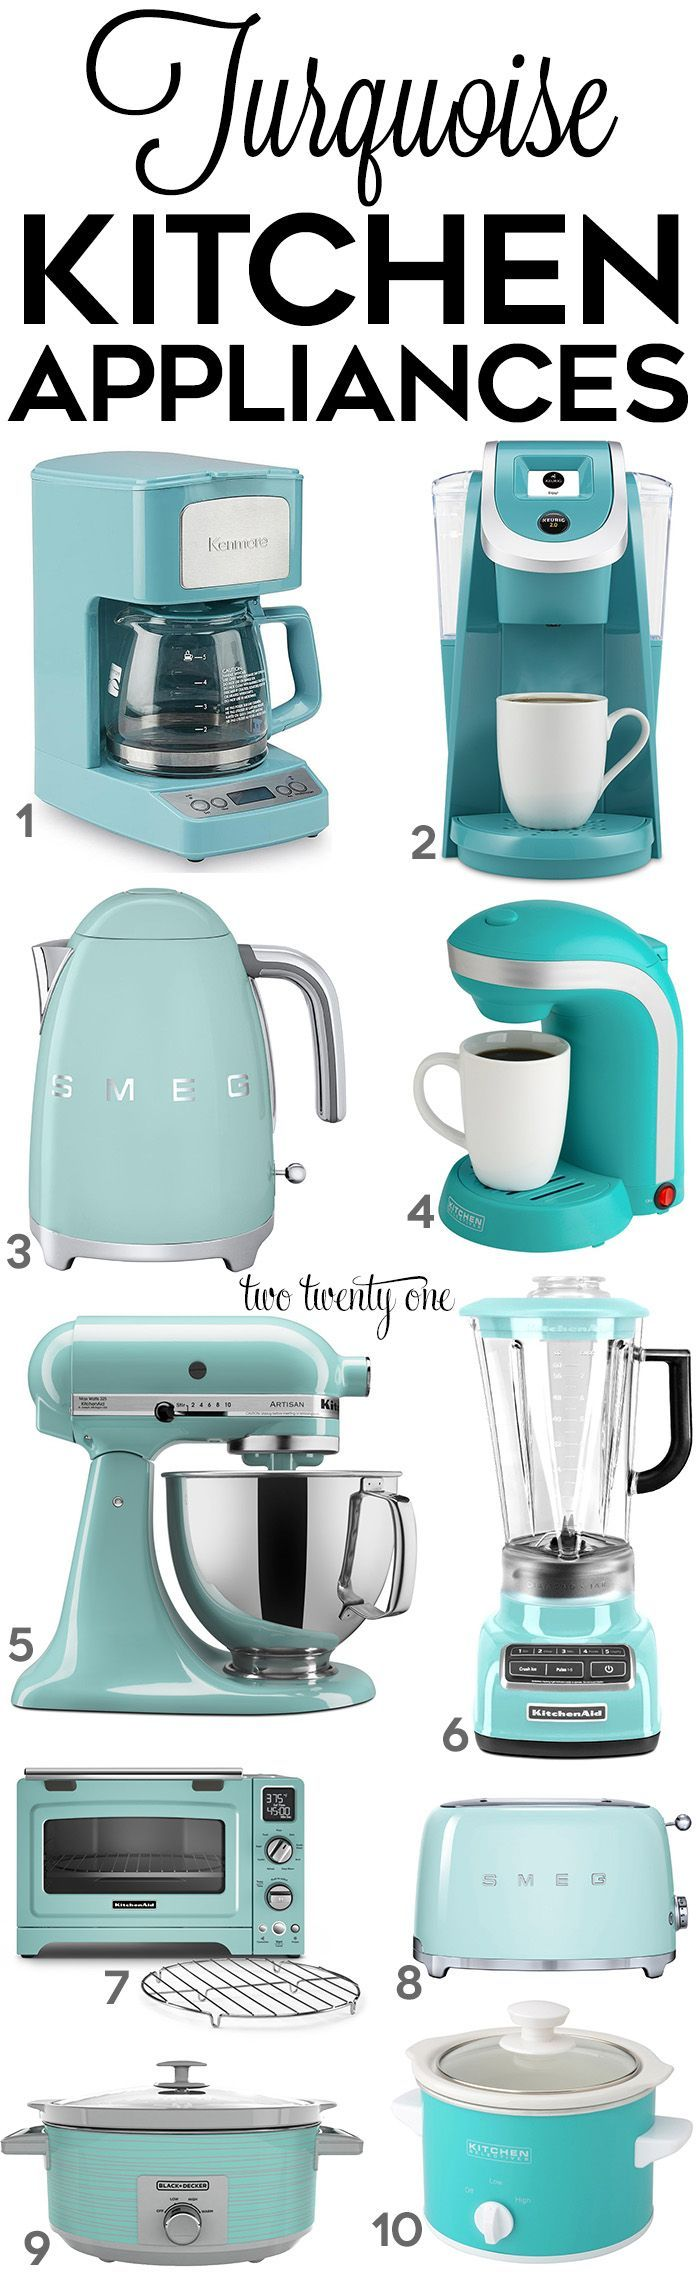 67 best Kitchen Appliance Ideas images on Pinterest | Cooking ware ...